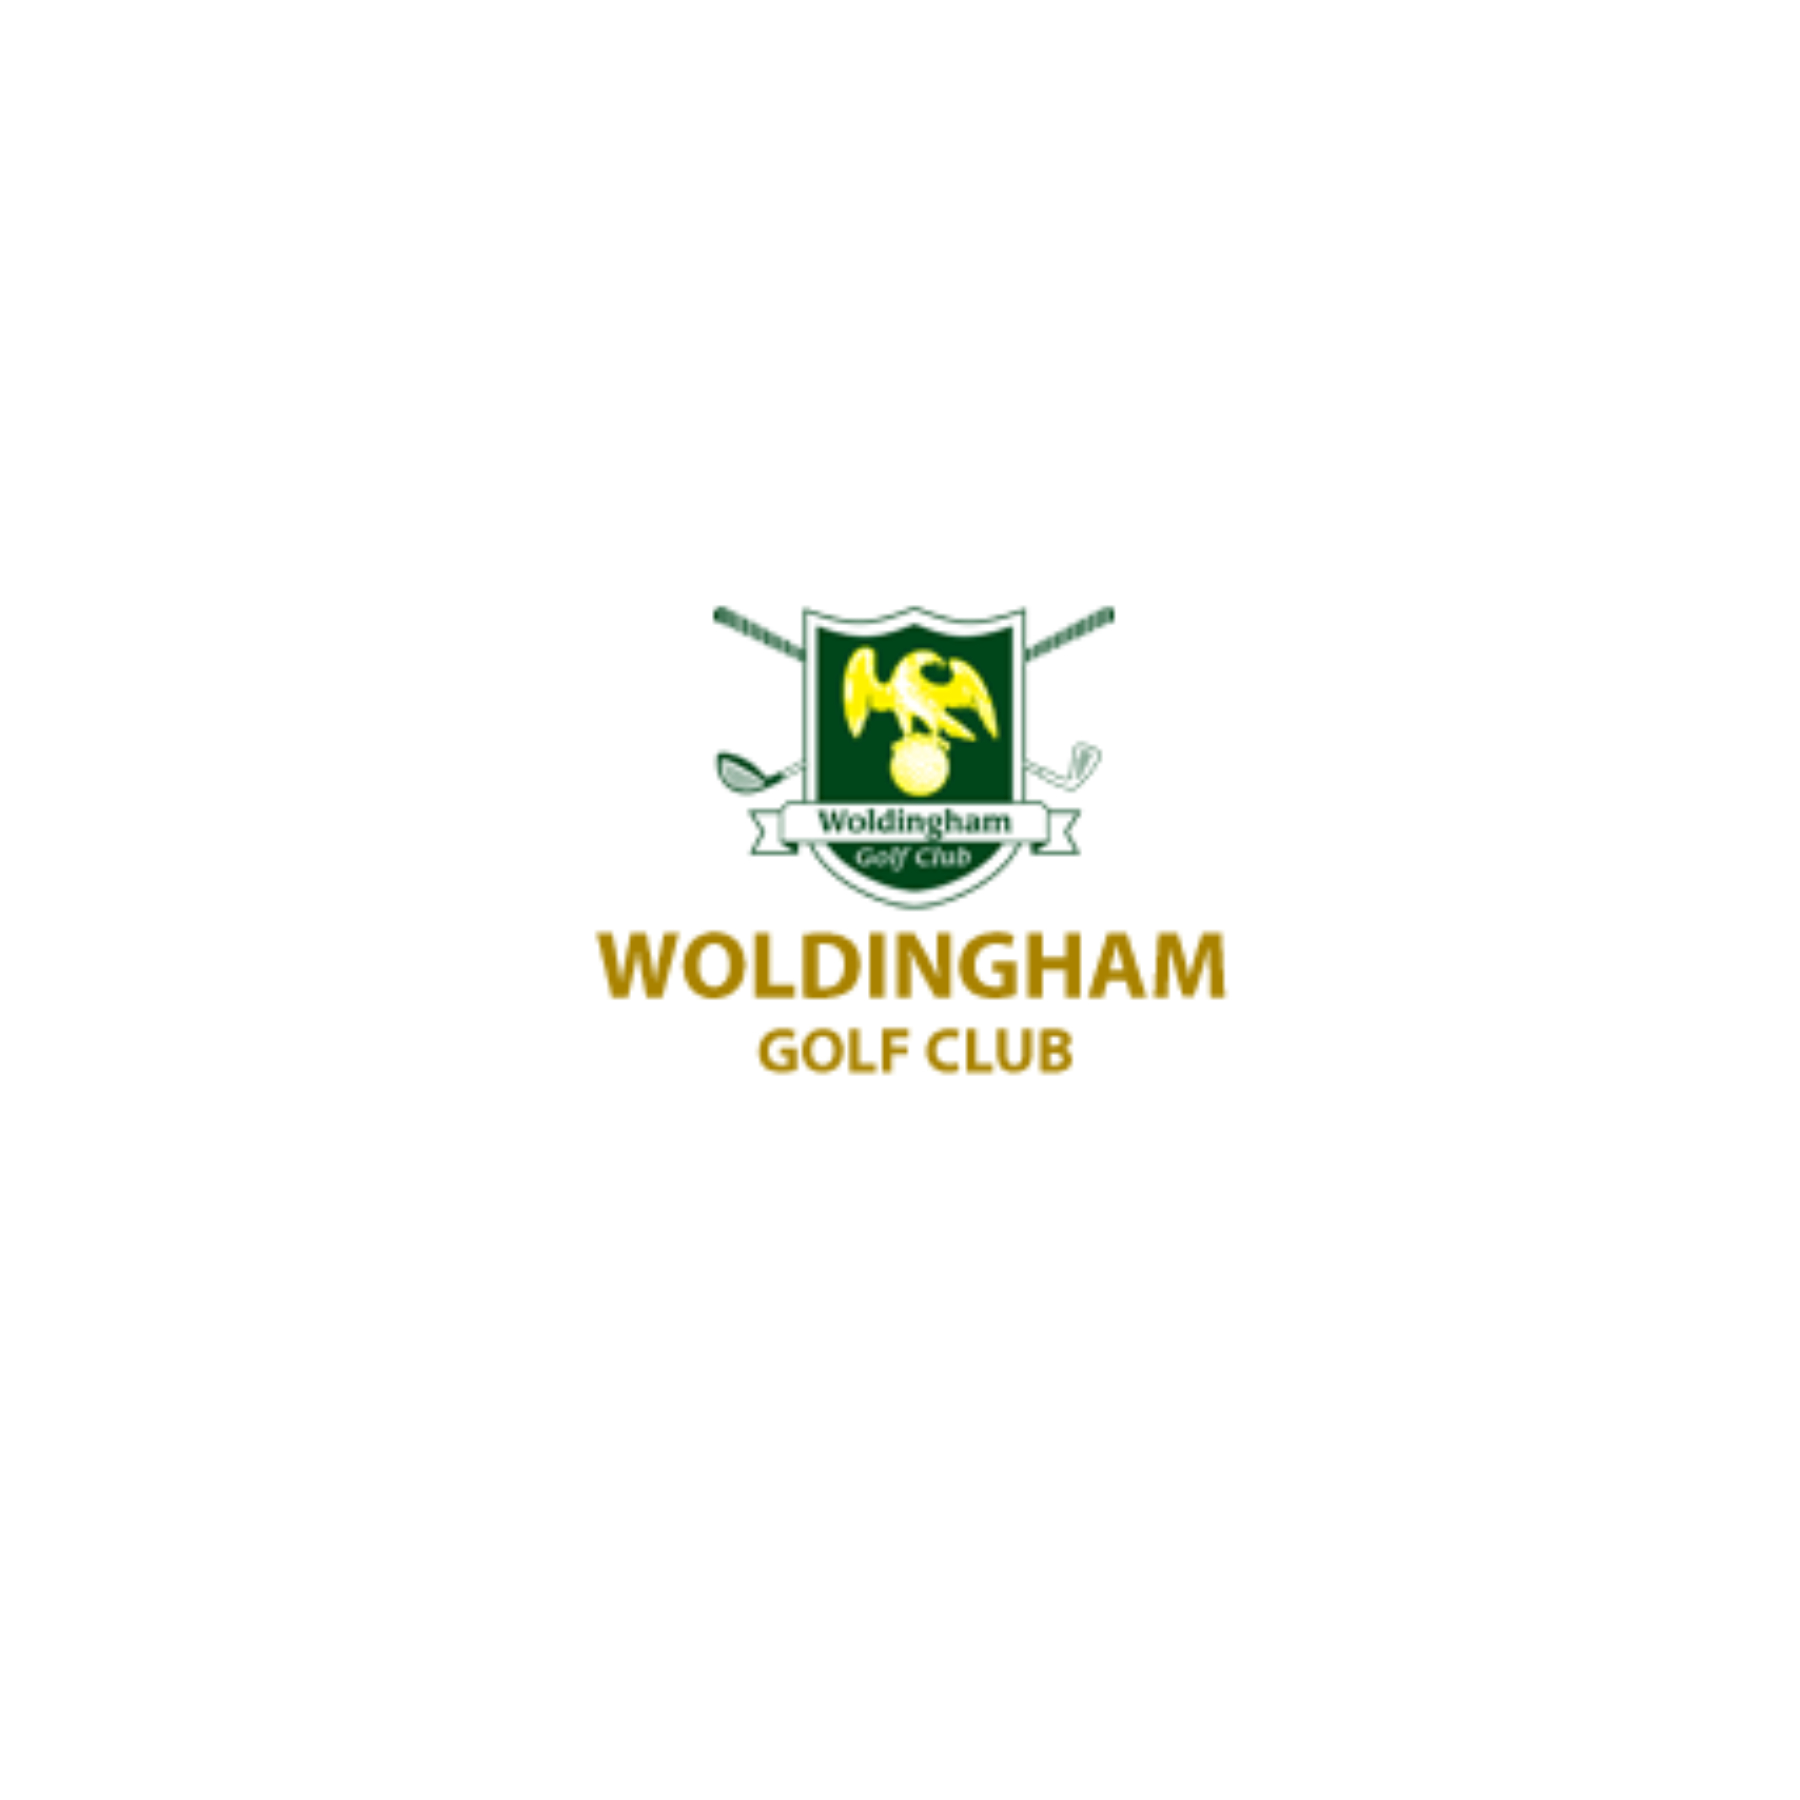 Woldingham Golf Club - Beautifully situated amongst the grounds of the golf course, this stunning wedding venue offers the perfect place to tie the know whilst enjoying some stunning scenery.